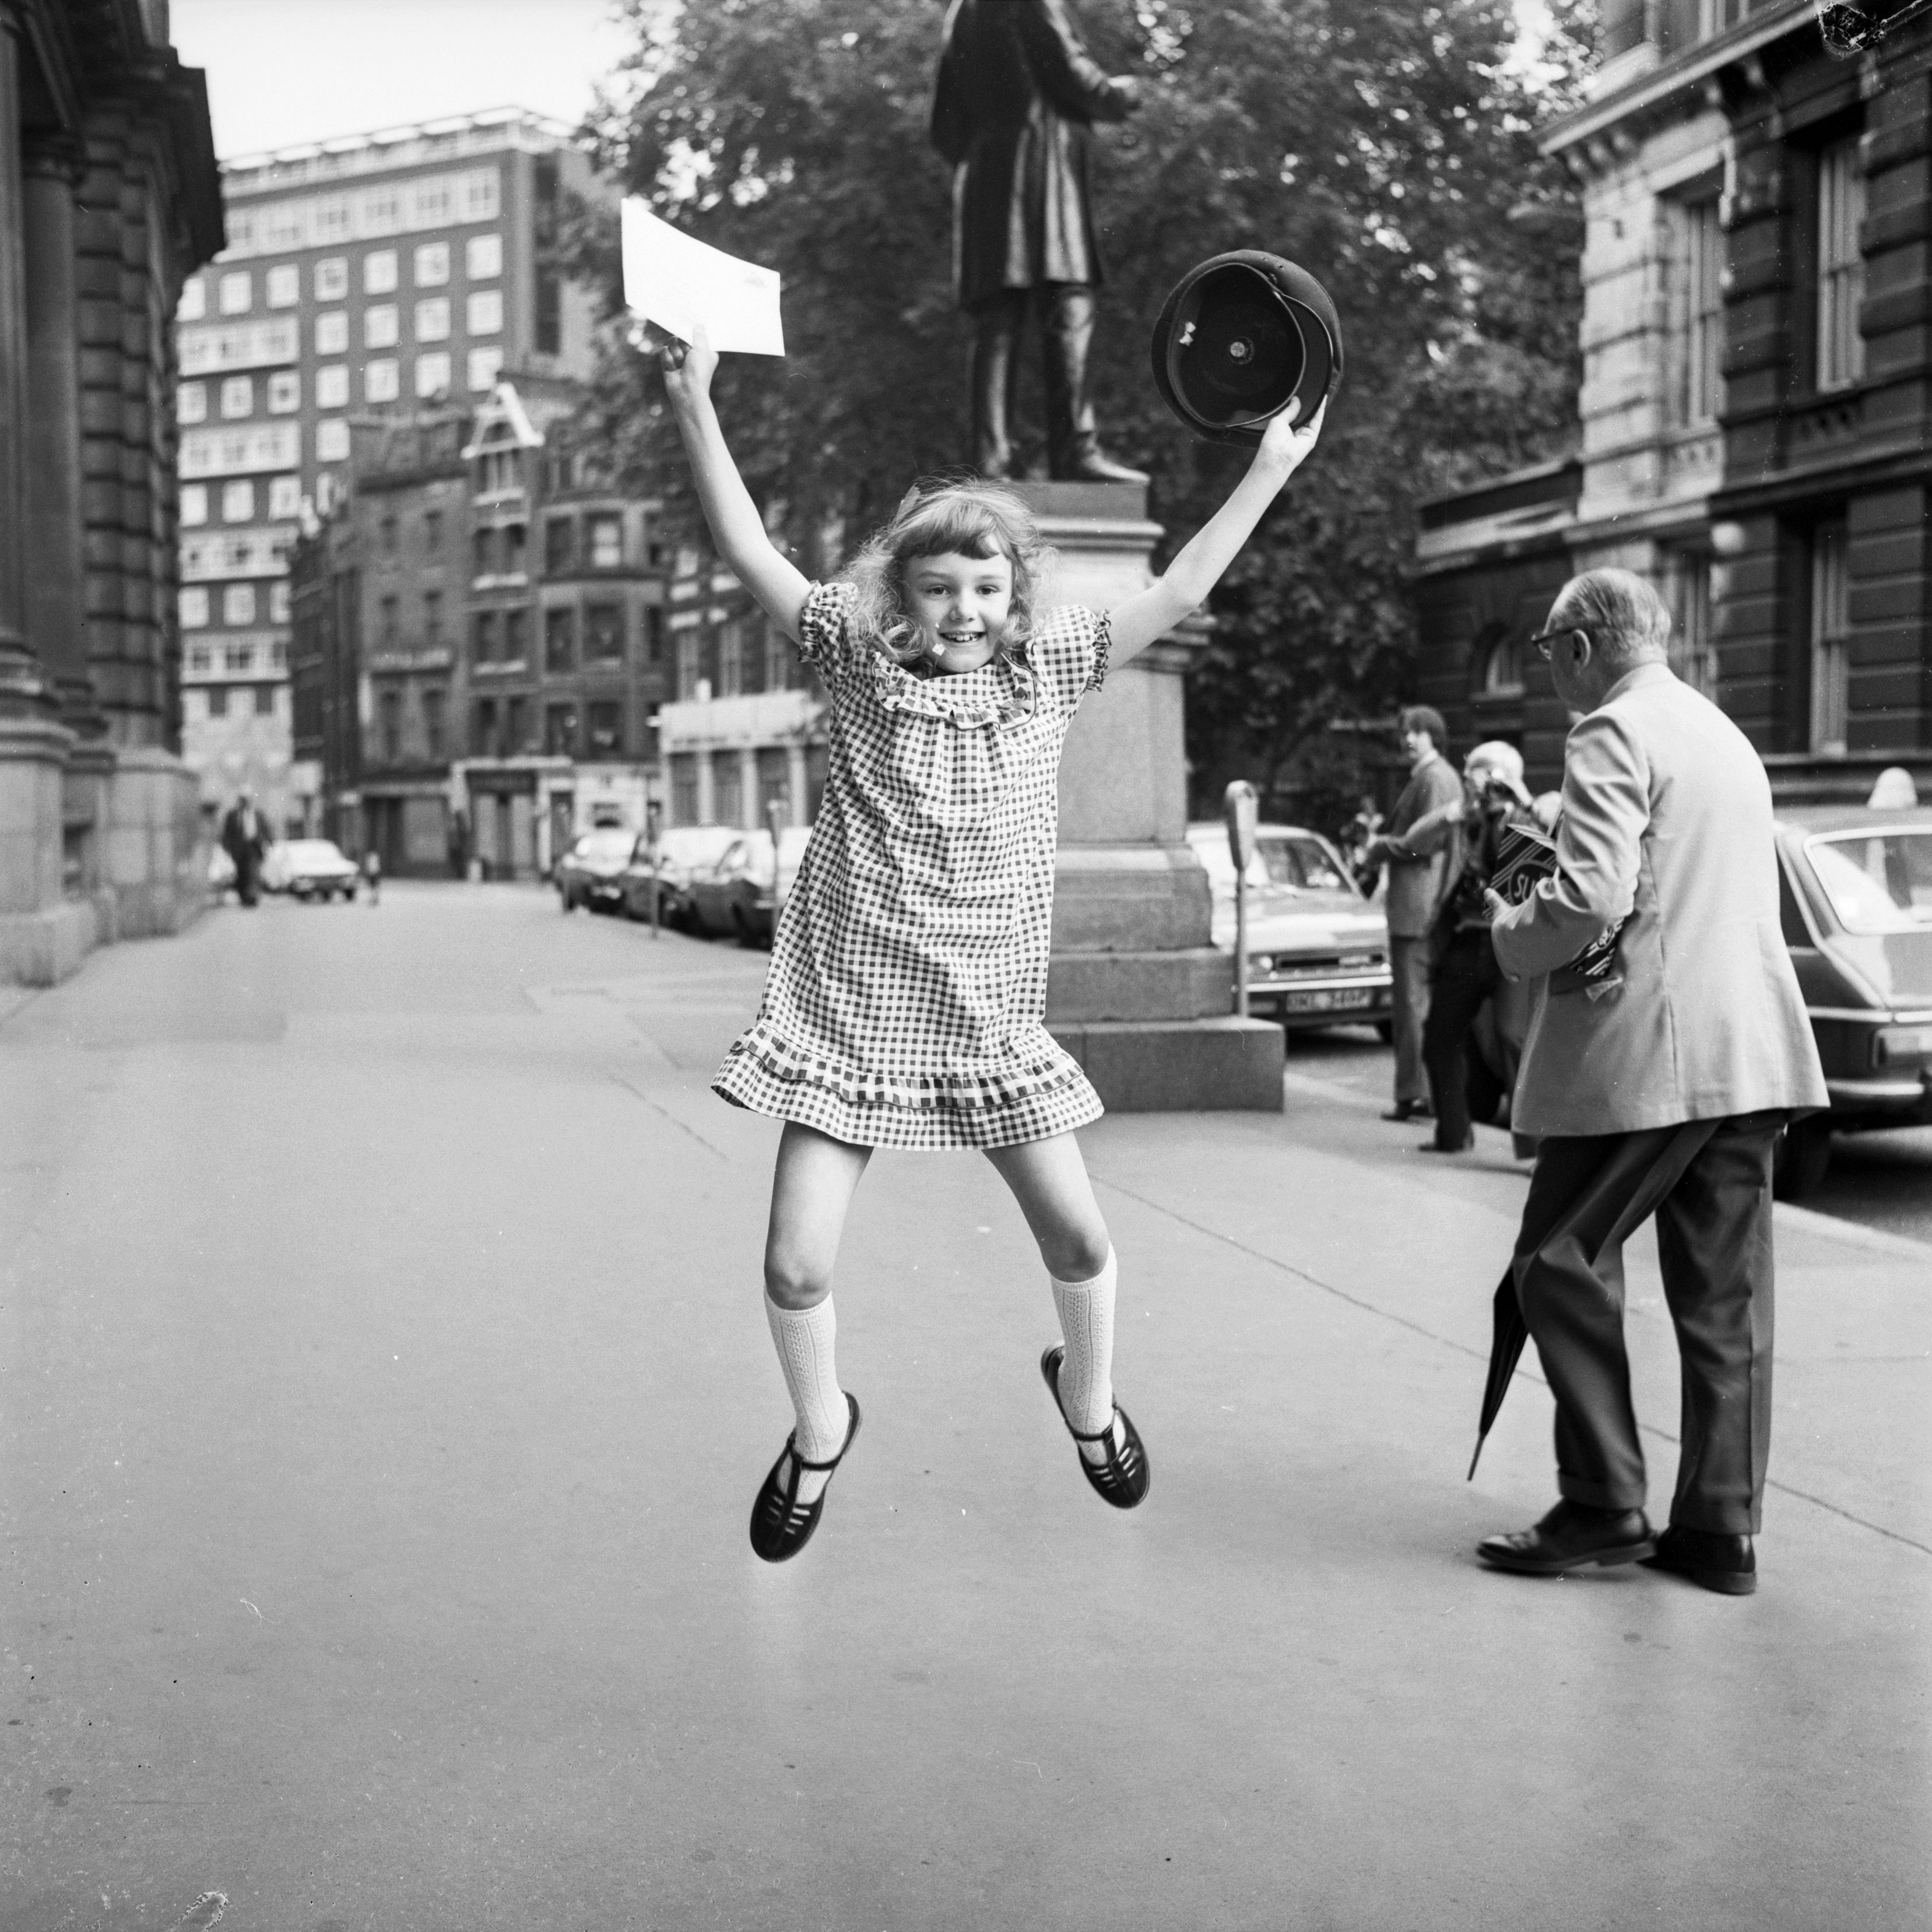 30th July 1980: Eight year old Helen Marr celebrating after being voted the best young letter writer in Britain, in a contest run by the Post Office. (Photo by Ray Moreton/Keystone/Getty Images)